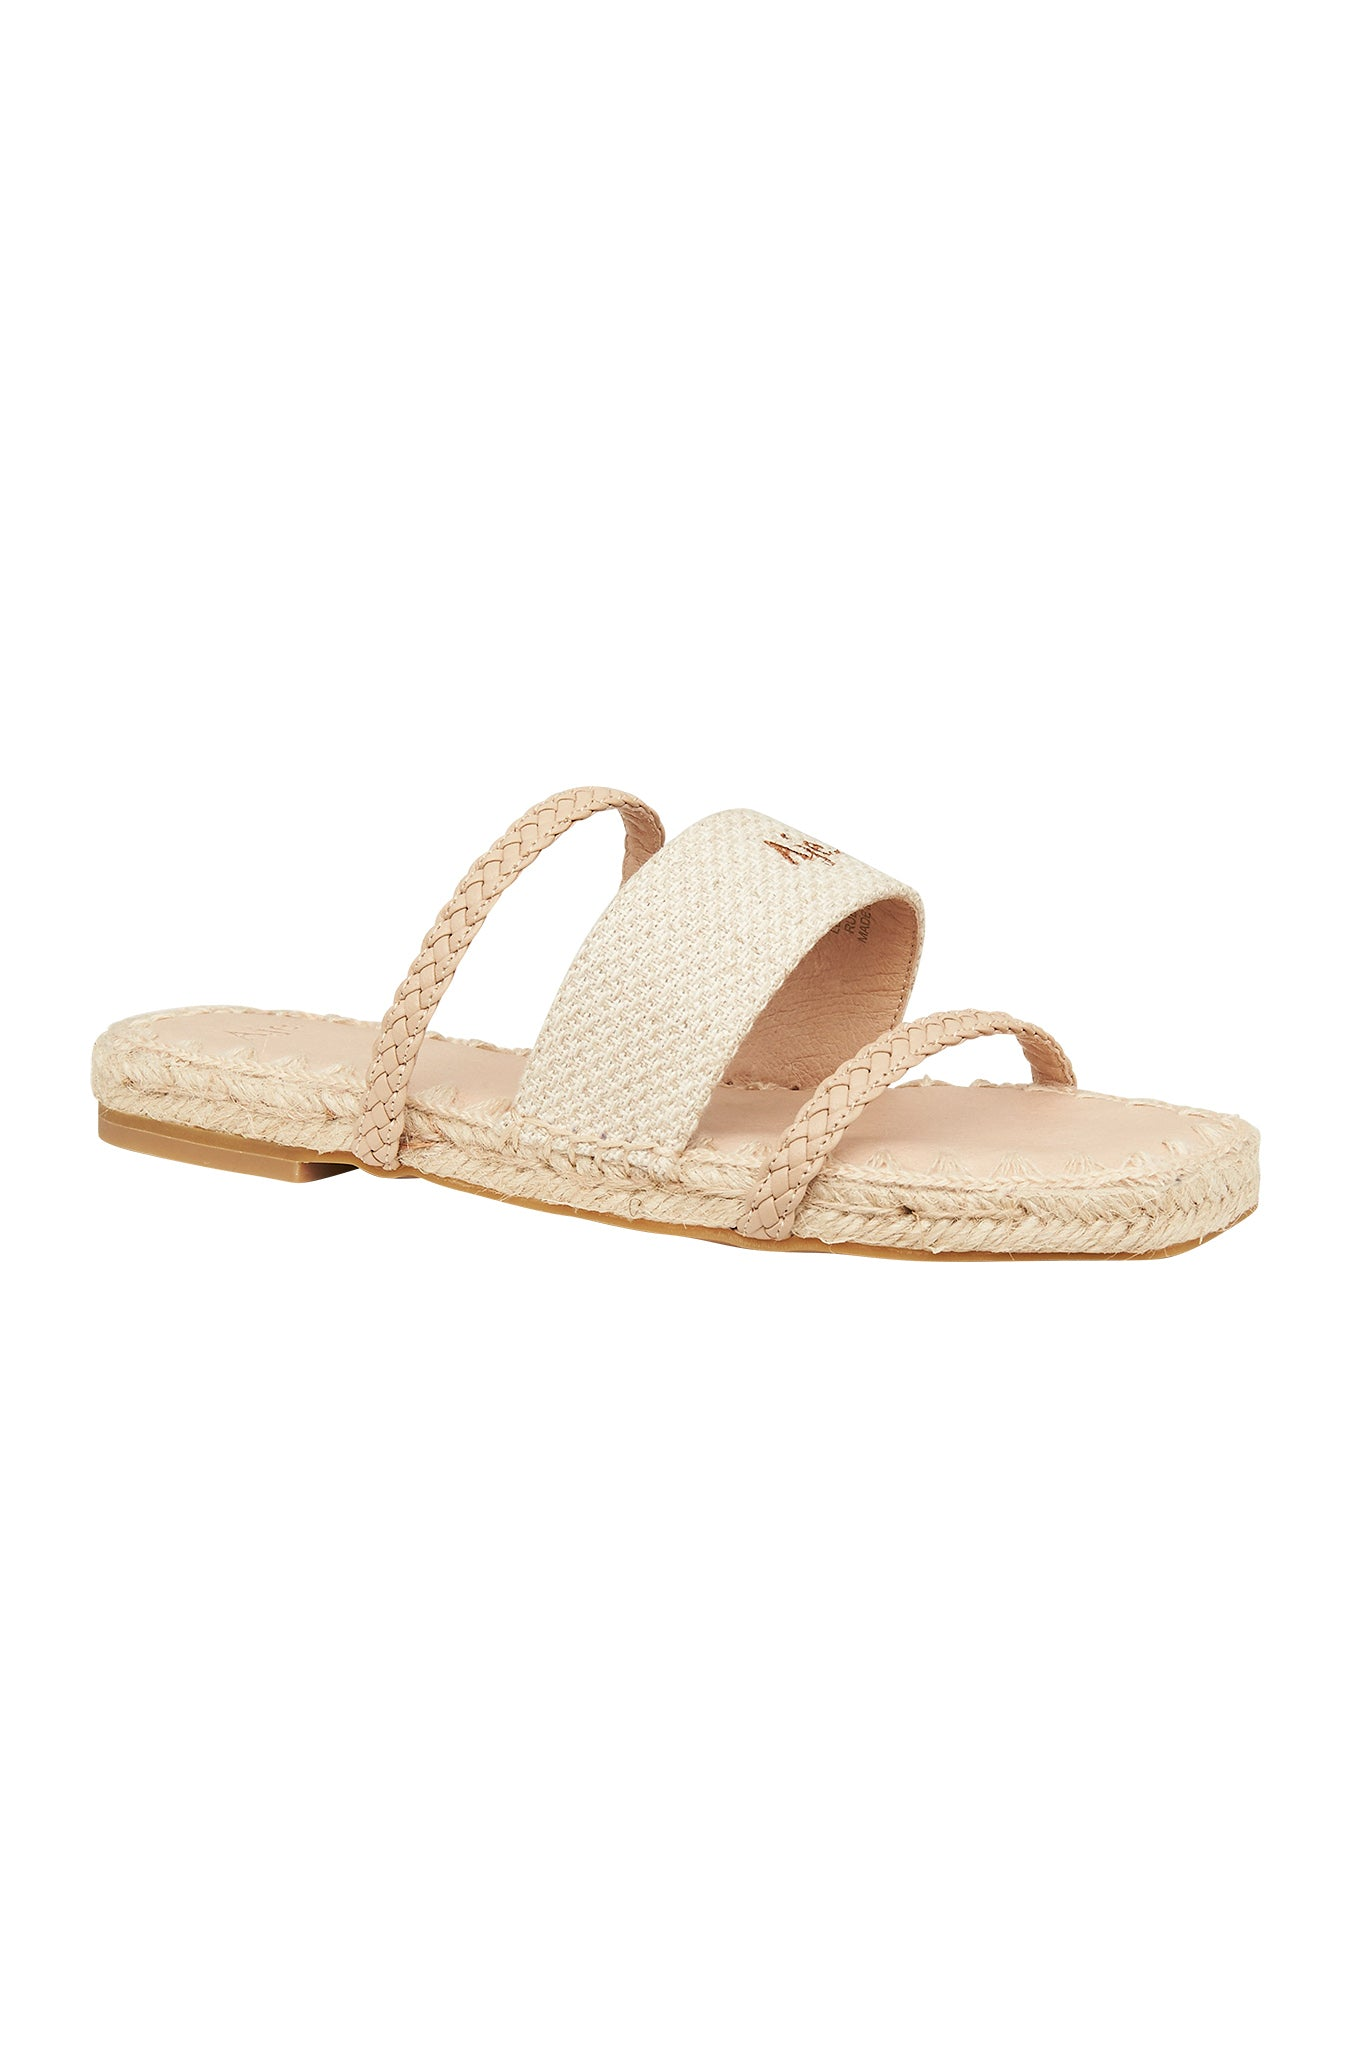 Acacia Slide Espadrille Outfit View